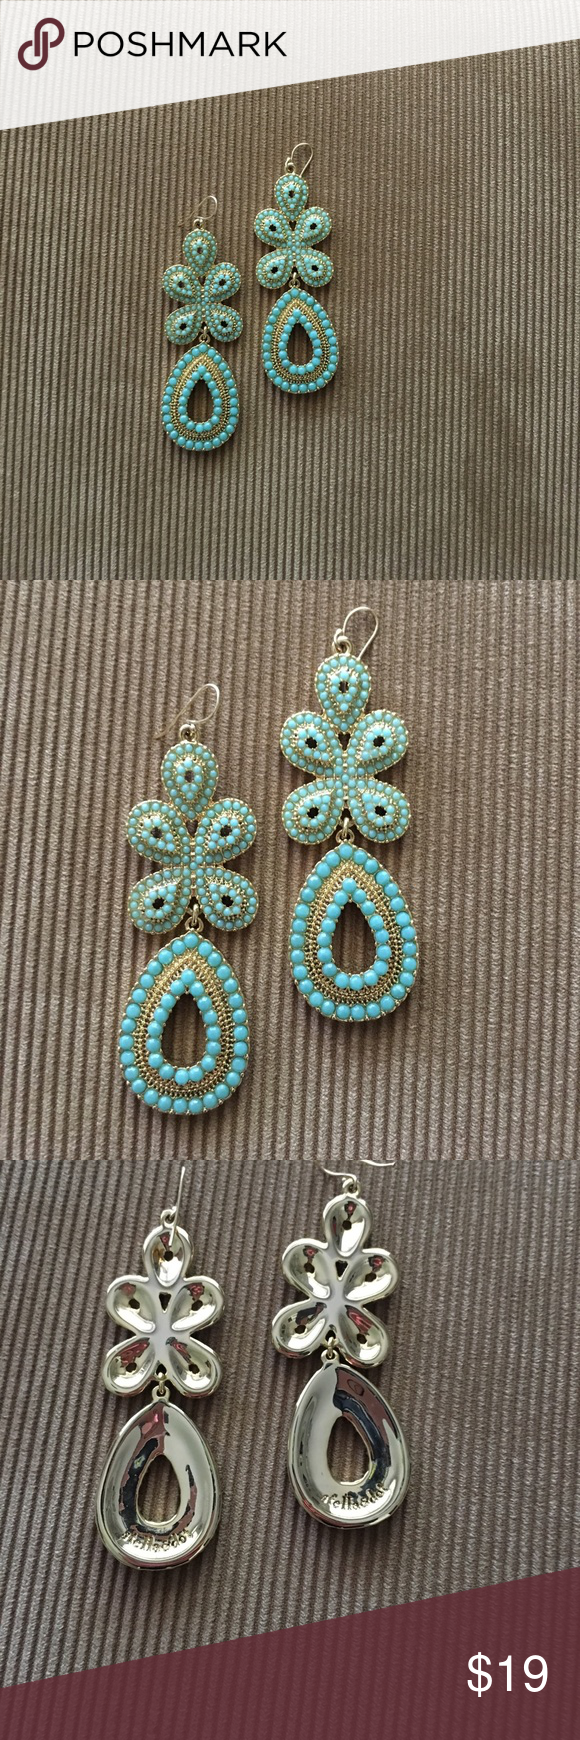 Women S Stella Dot Blue Green Size Os Earrings At A Ed Poshmark Excellent Condition Ready To Wear